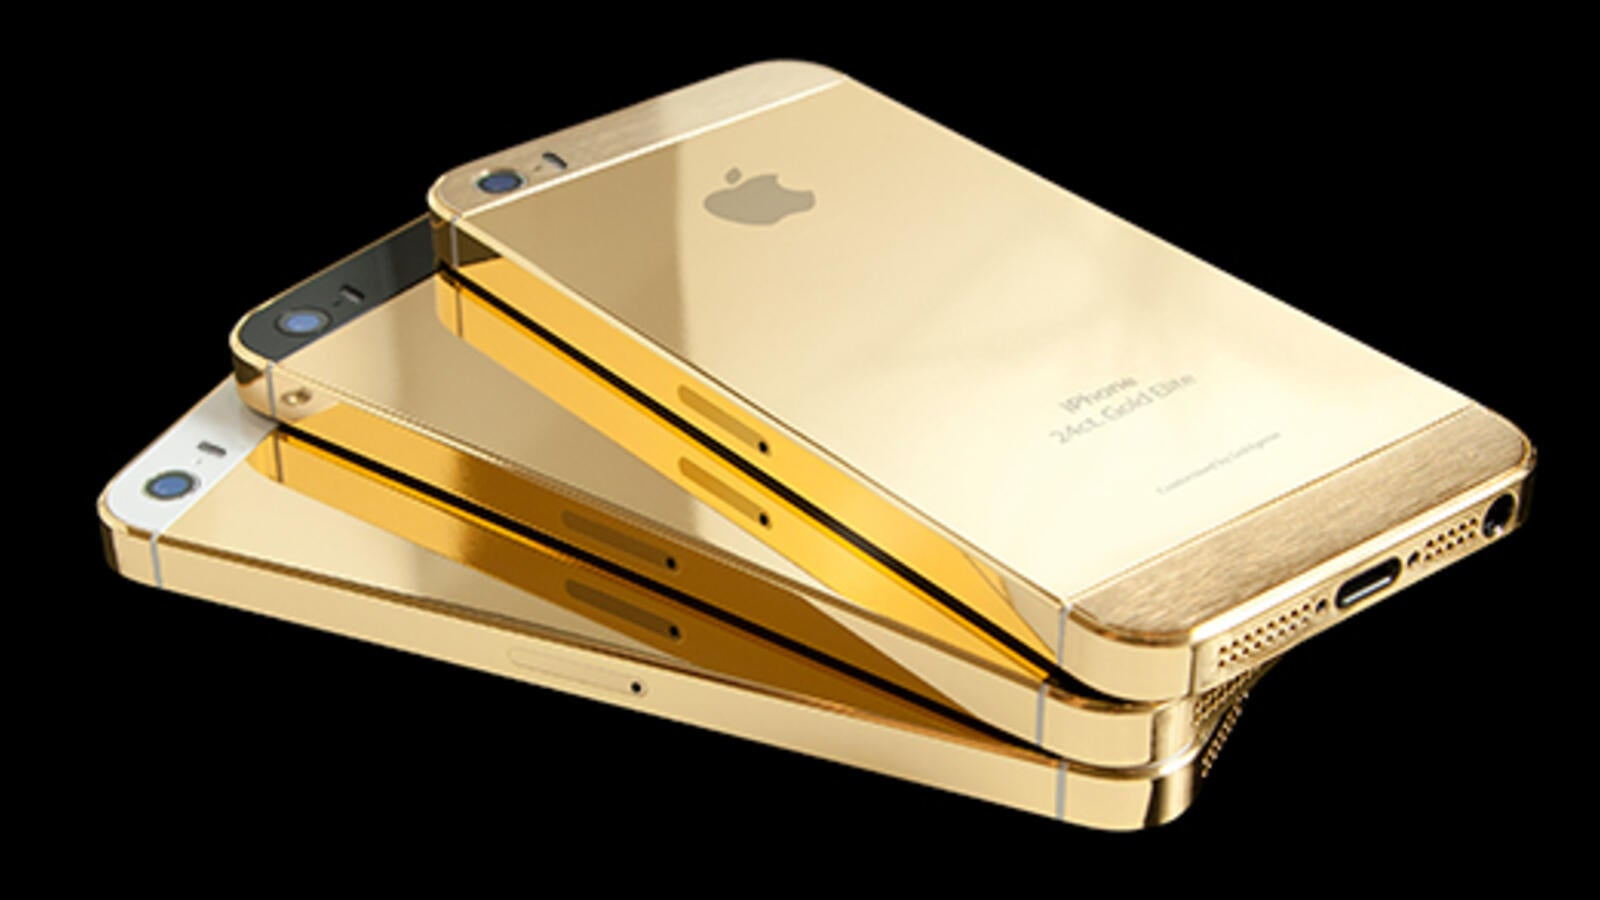 With The Gold - Gold Phones - HD Wallpaper